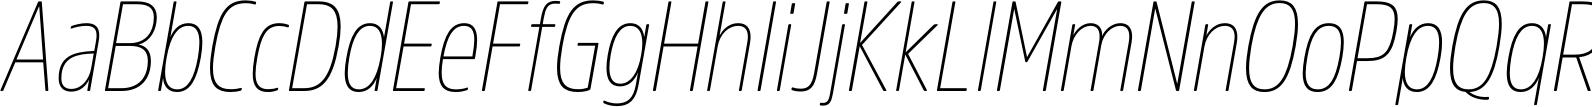 AmsiProCond ThinItalic Font